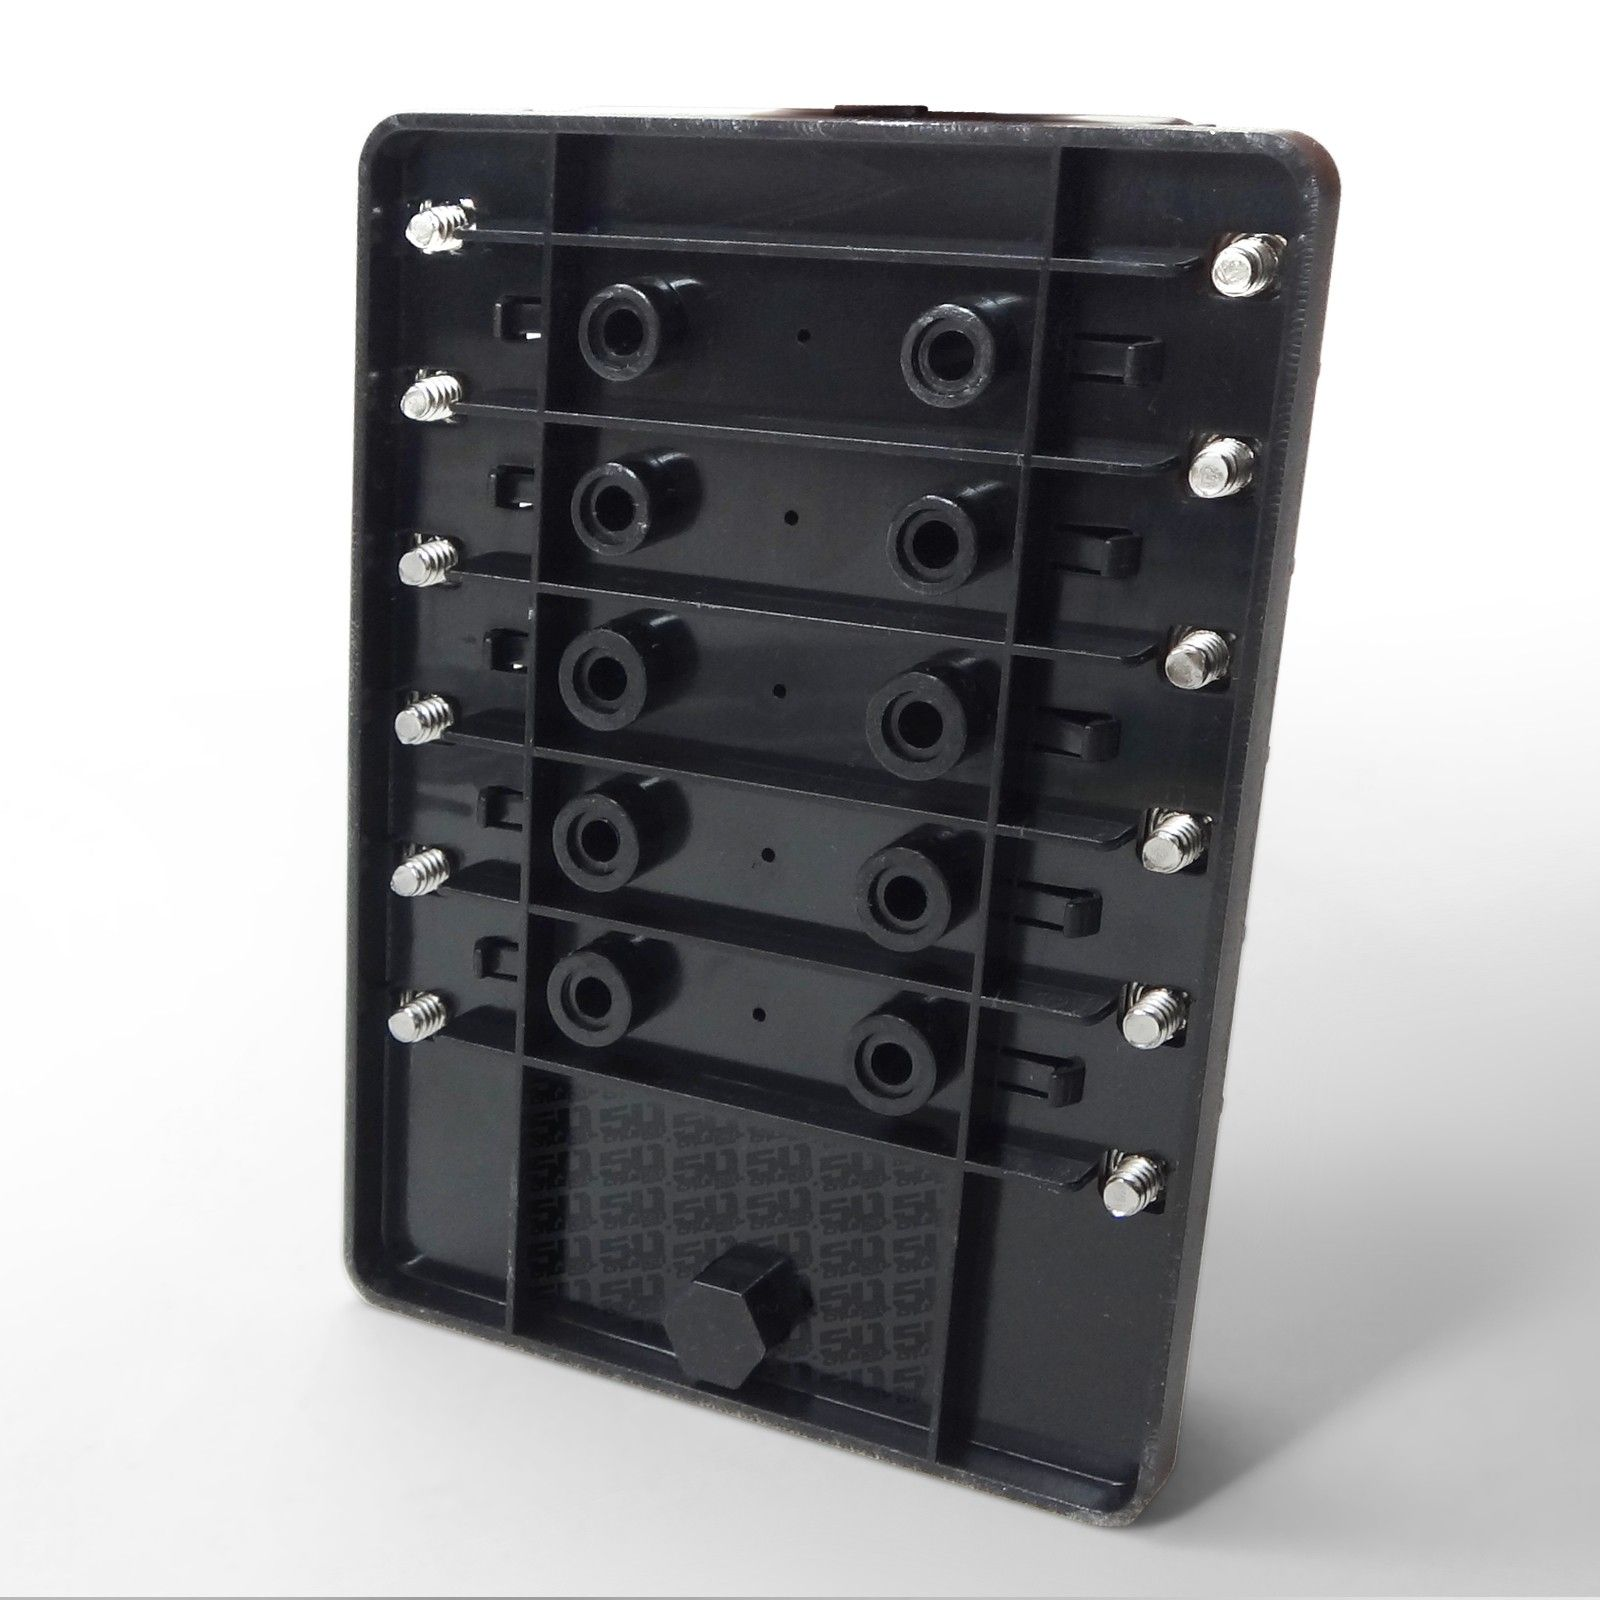 Universal 12 Way Covered 12v Circuit Blade Fuse Box With Led Indicators And Accessories